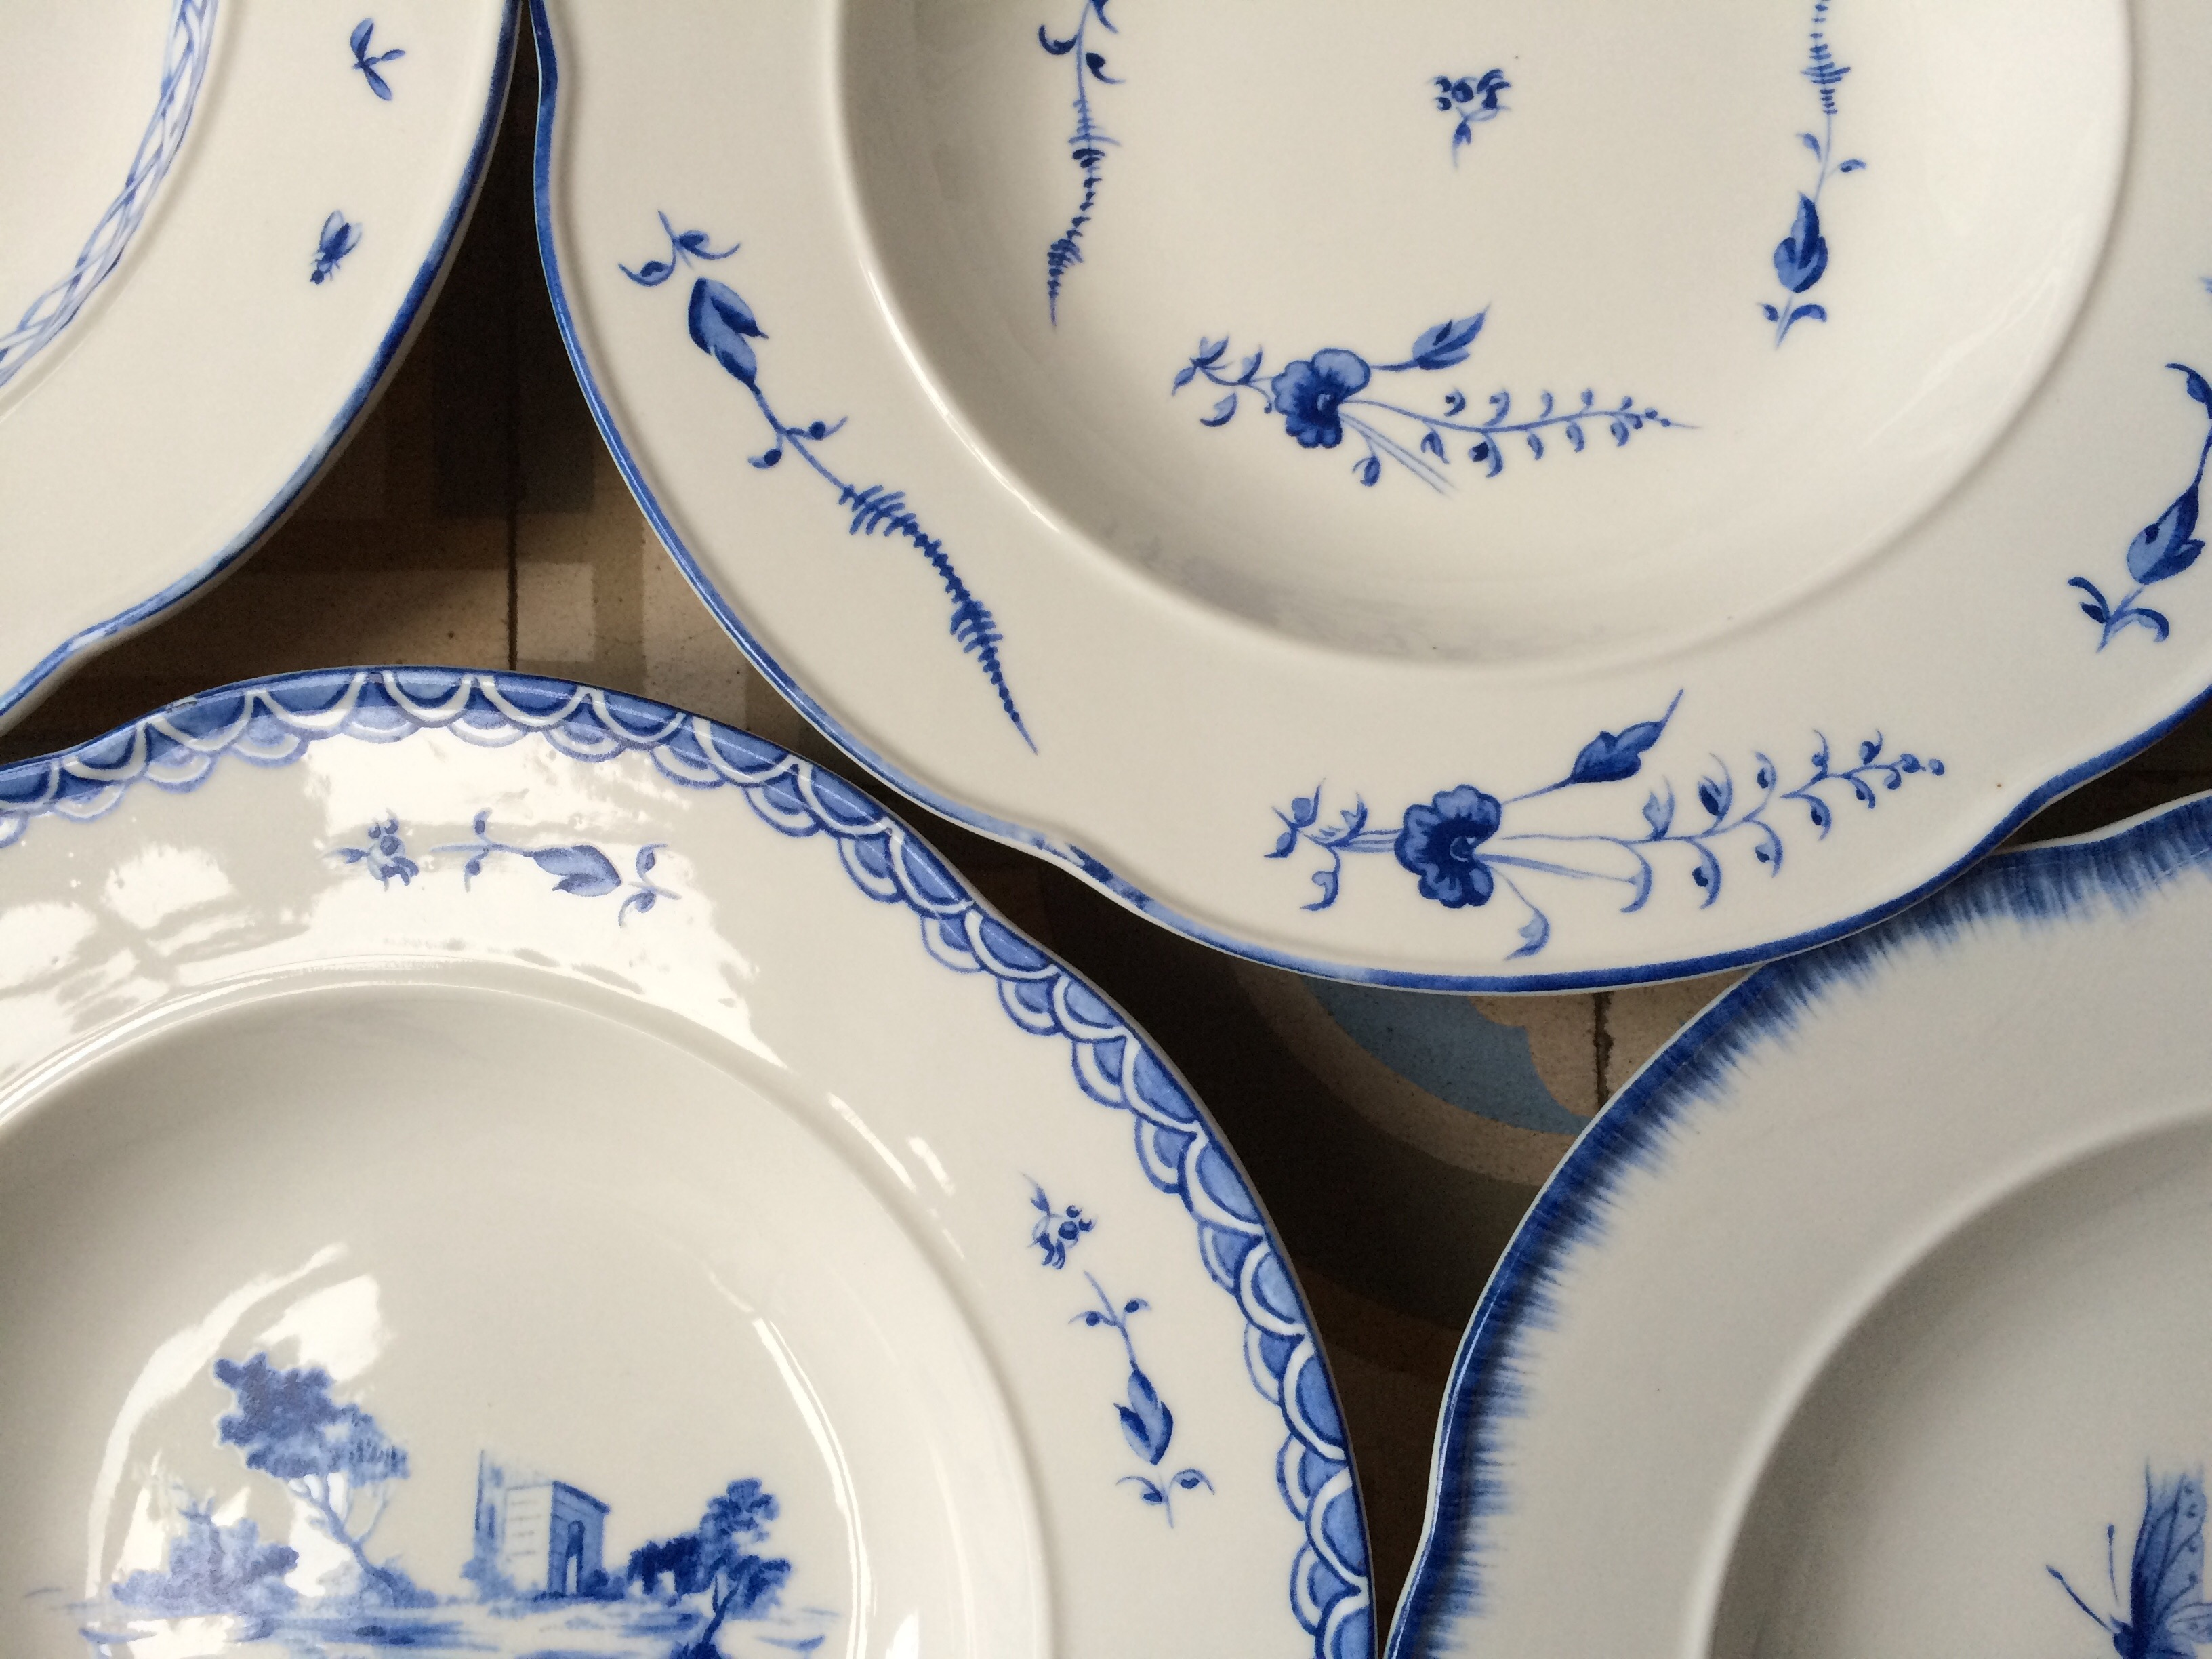 ... white china plates or you want to bulk up your existing collection (these mix pretty well with more expensive older items) itu0027s worth taking a look. & Pretty Plates: Blue and White Dinnerware from Zara | Life in a Cold ...